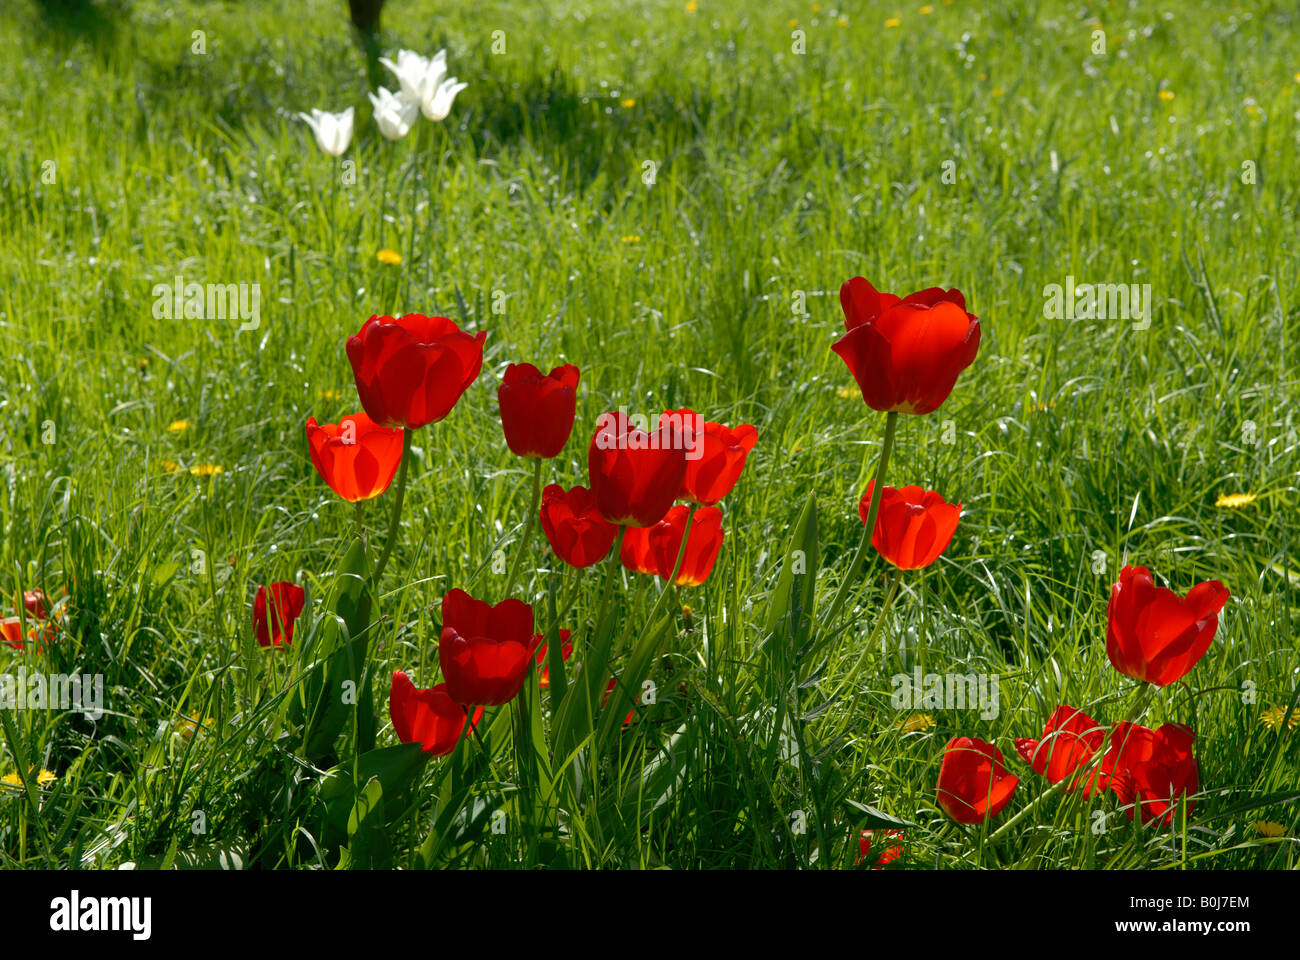 RED TULIPS - Stock Image